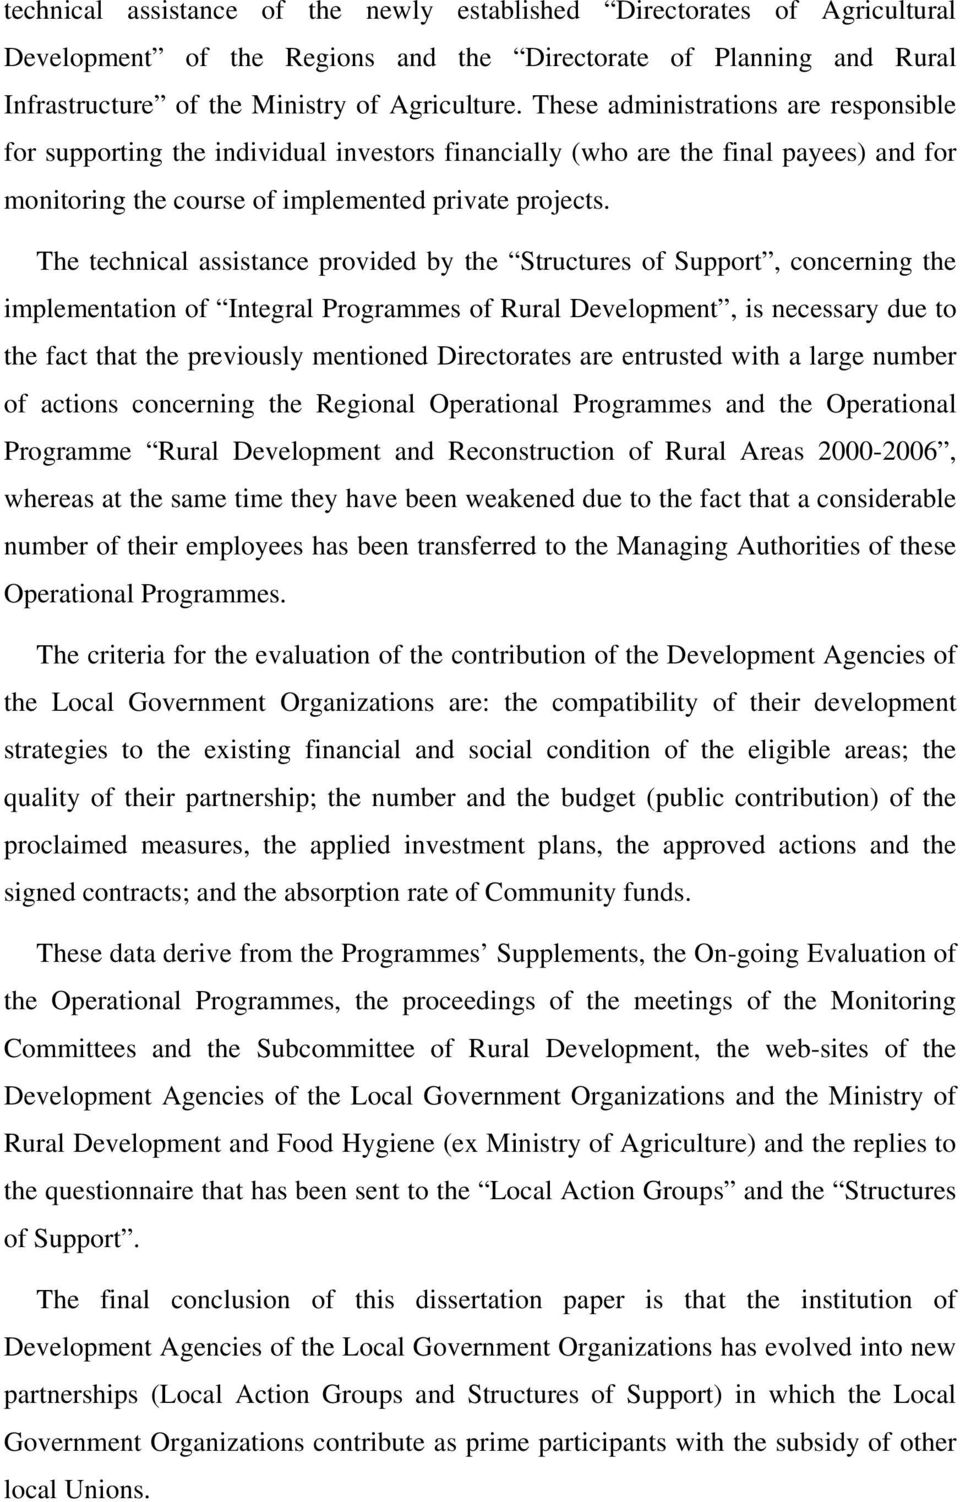 The technical assistance provided by the Structures of Support, concerning the implementation of Integral Programmes of Rural Development, is necessary due to the fact that the previously mentioned